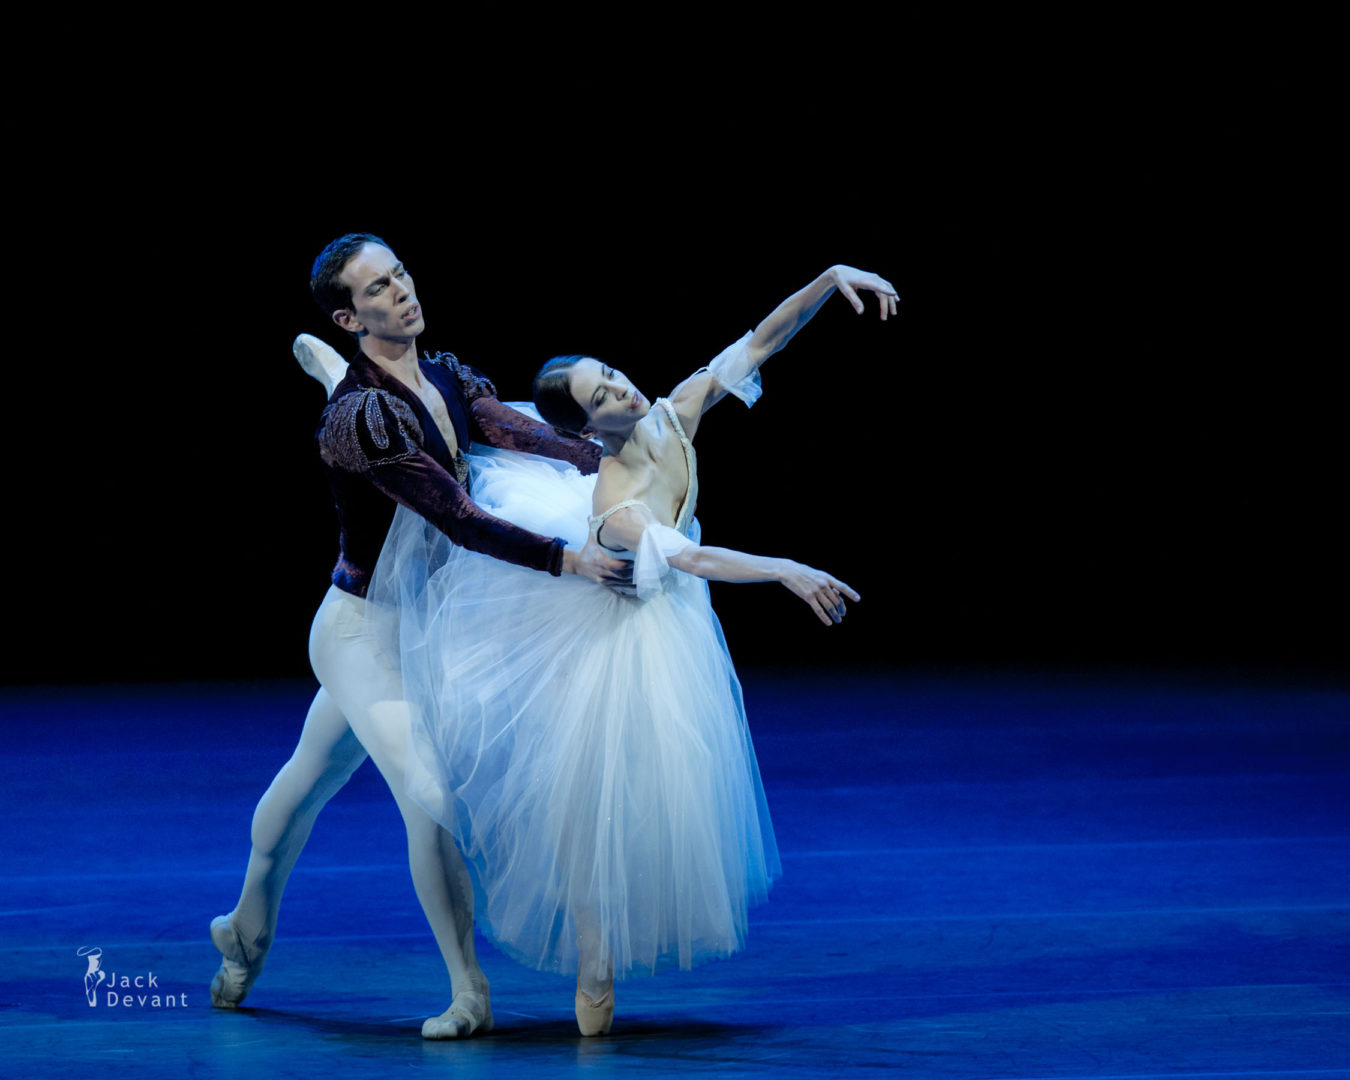 Rebecca Bianchi and Claudio Cocino in duet from Giselle, music by Adolphe Adam, choreography version by Patricia Rouanne after Marius Petipa